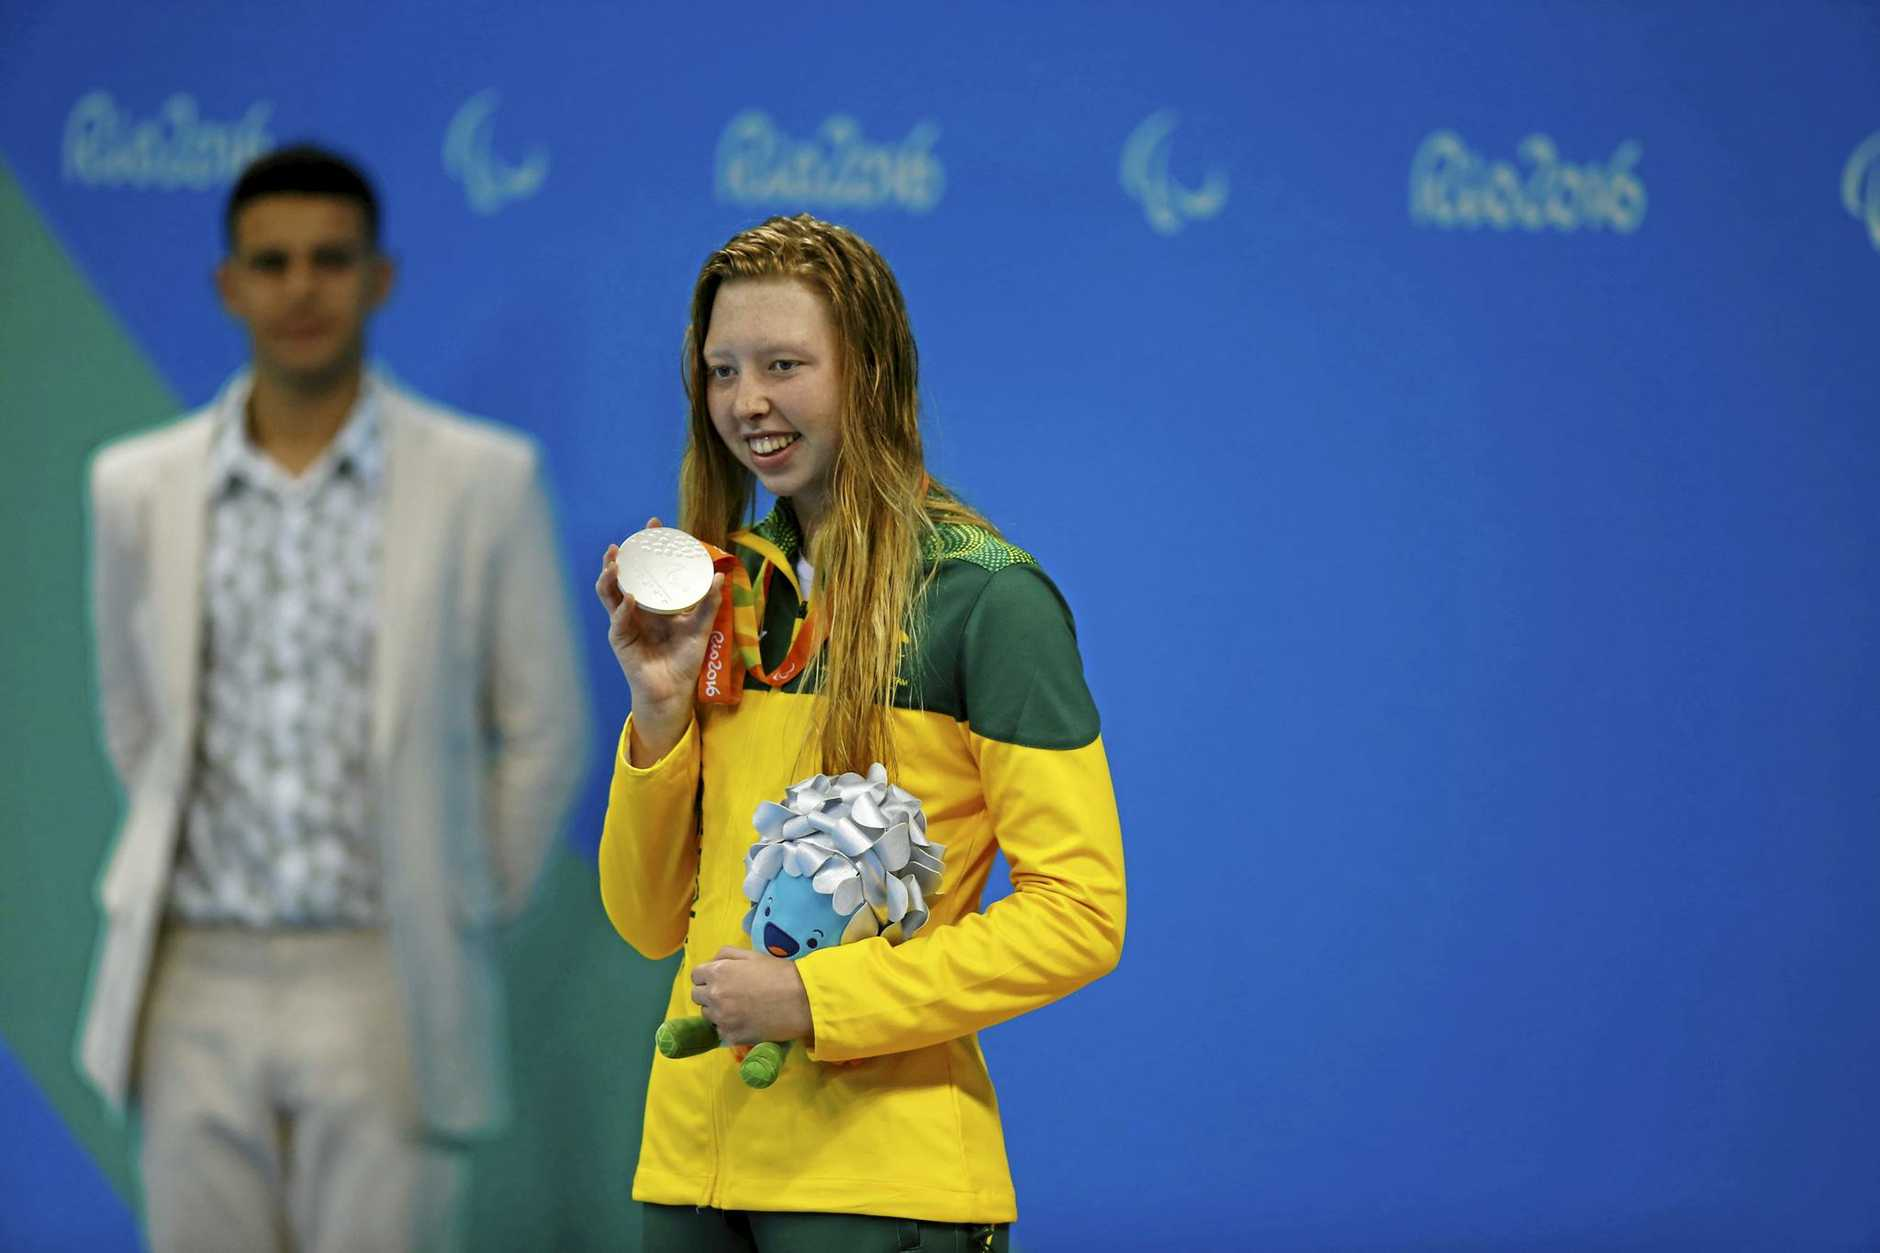 ON THE PODIUM: Lakeisha Ptterson with her silver medal after the women's 100m freestyle  at the Paralympics.